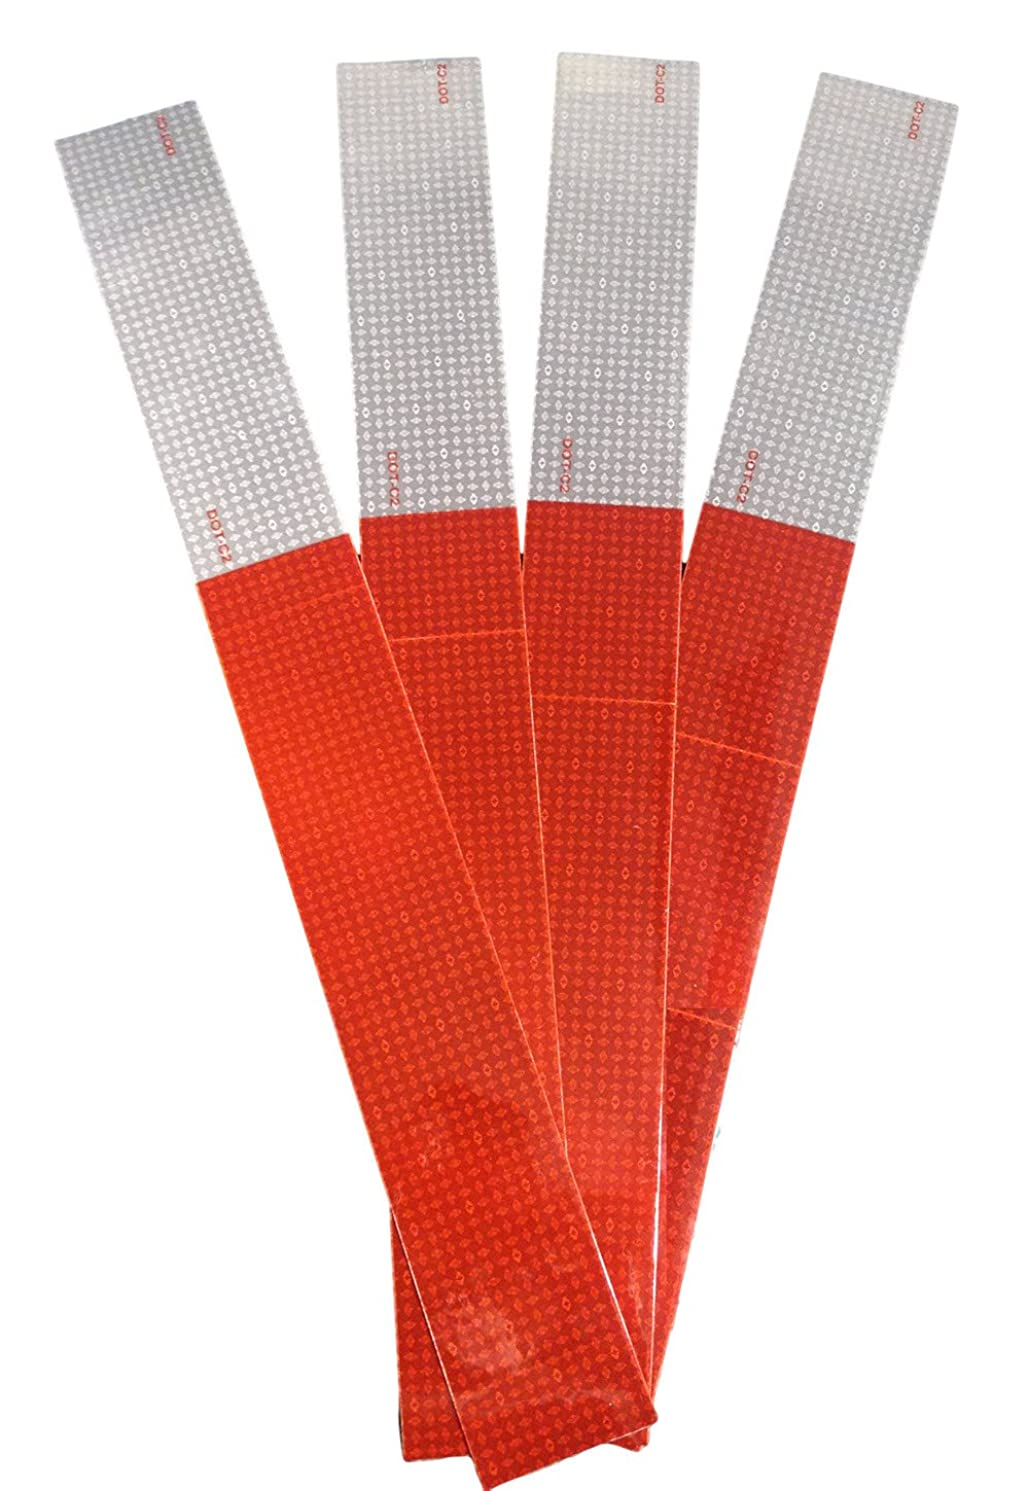 Reflective Tape-Red and White Strips-Premium Quality 8 mil Thickness-2